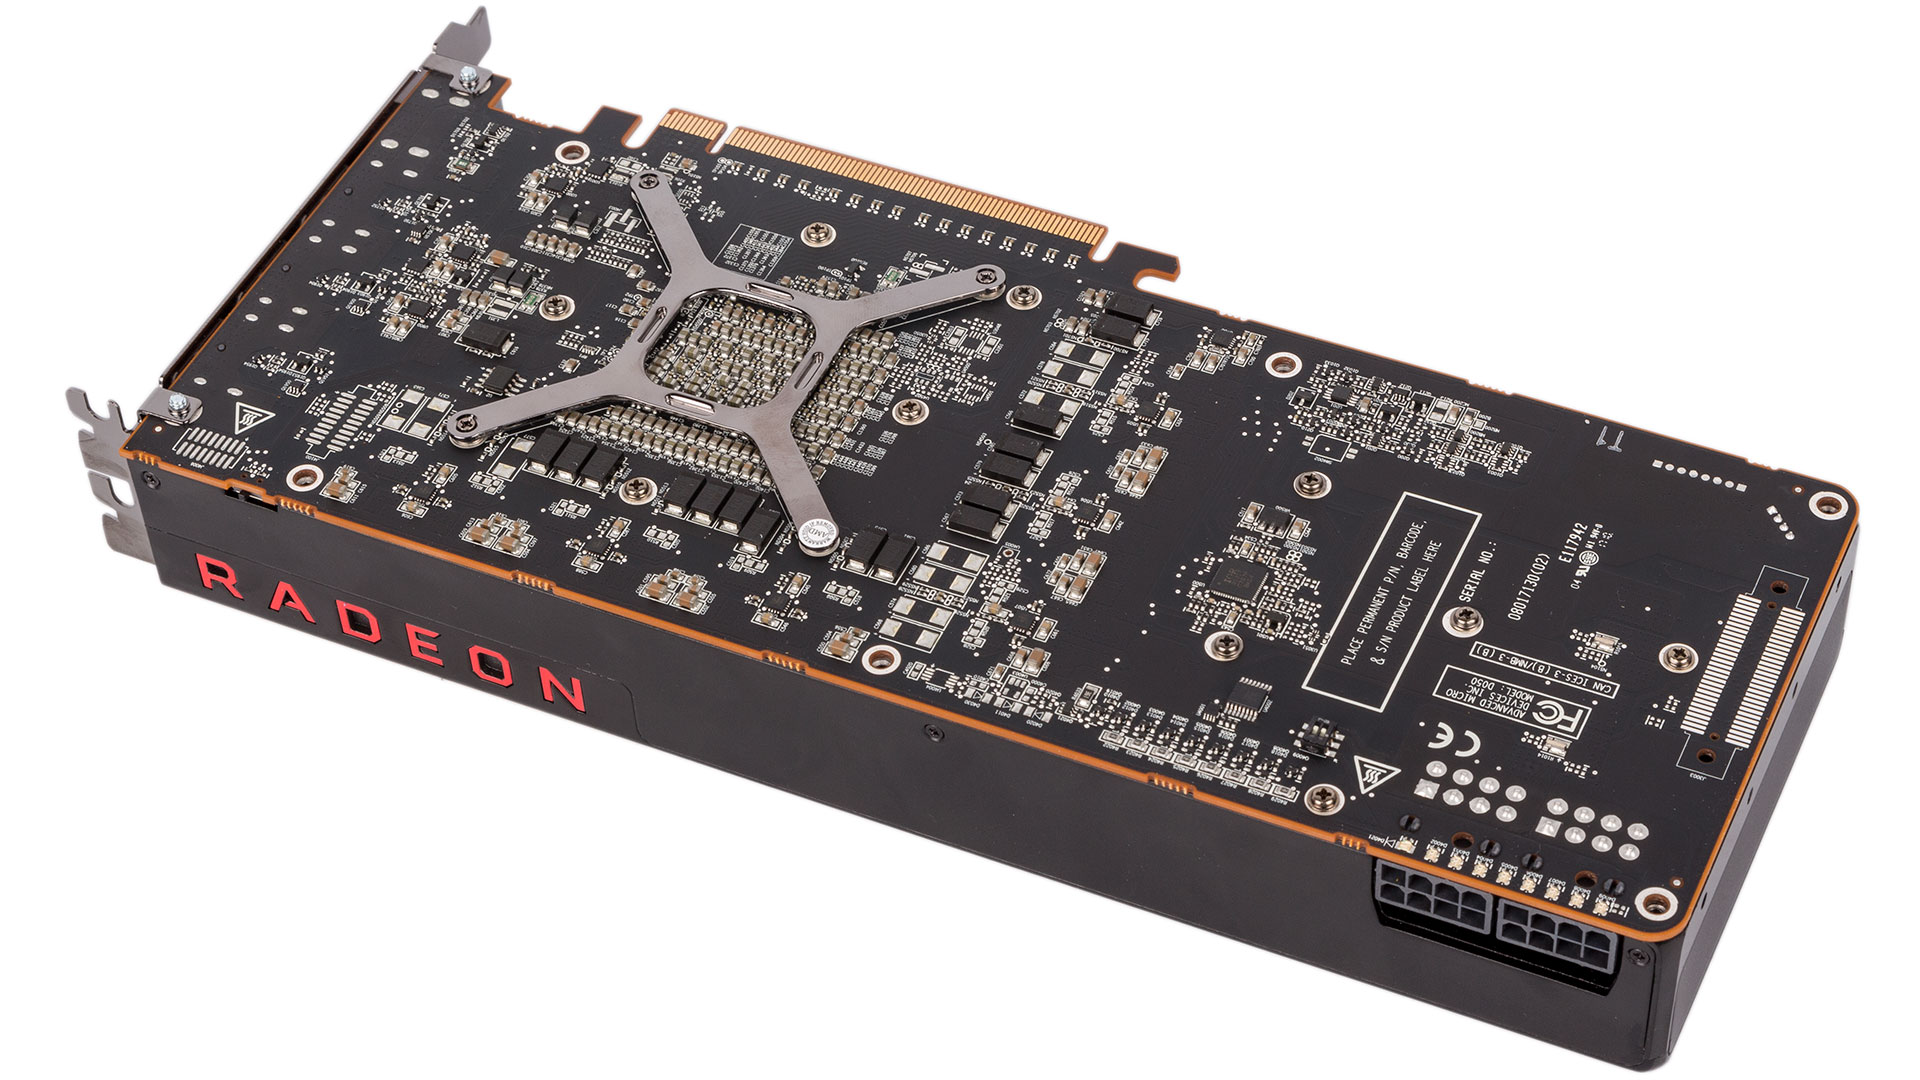 AMD Radeon RX Vega 64 and RX Vega 56 Review | bit-tech net